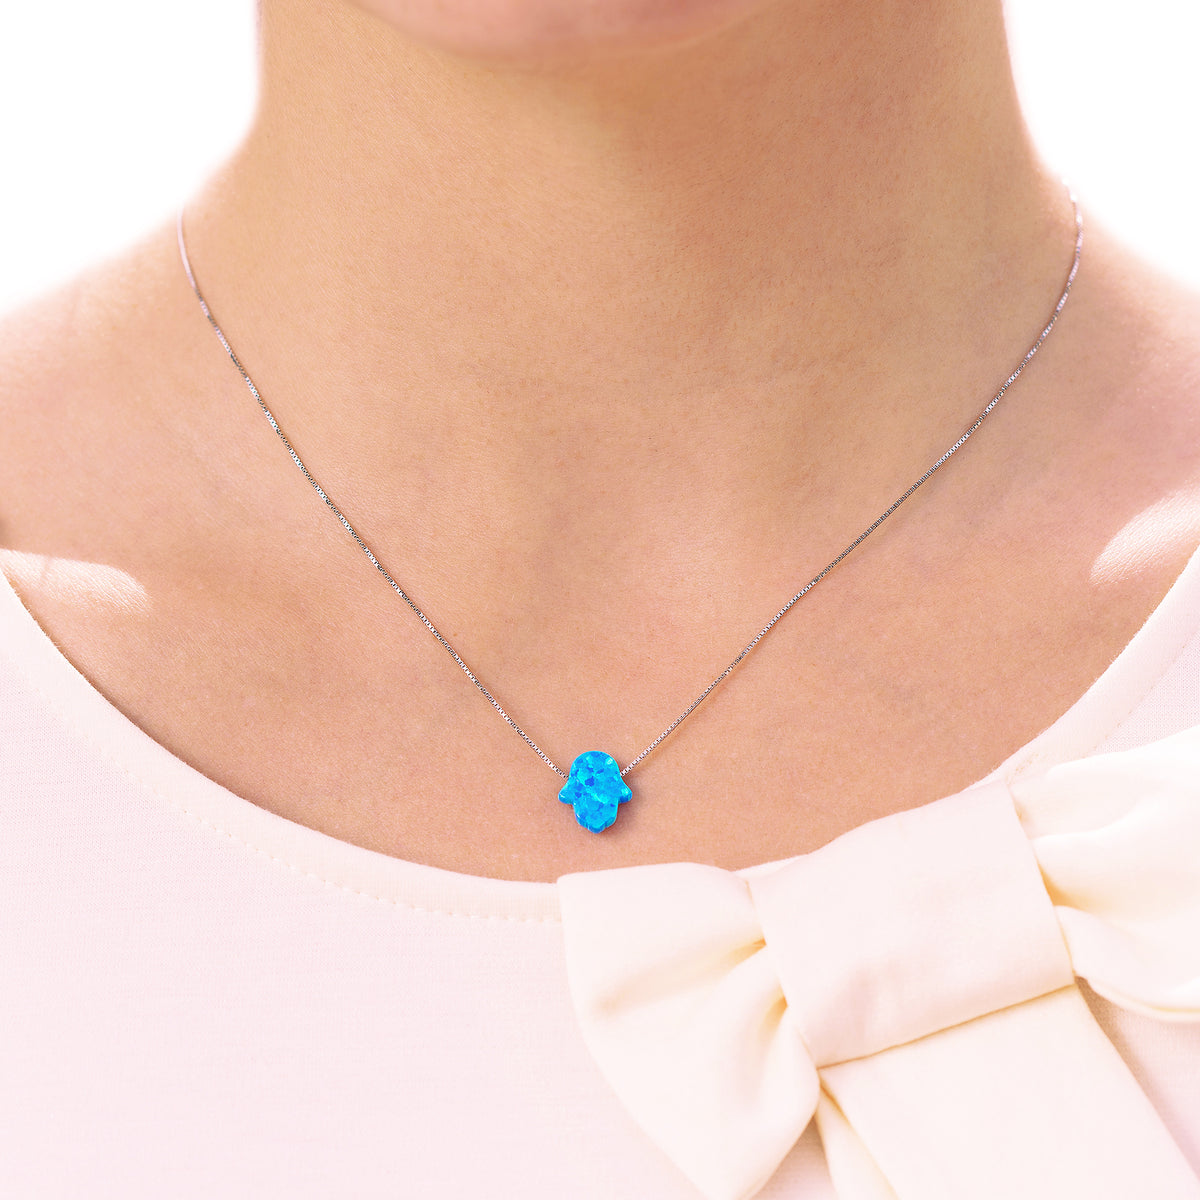 Good Luck Opal Hamsa Hand Necklace with Sterling Silver chain - Blue